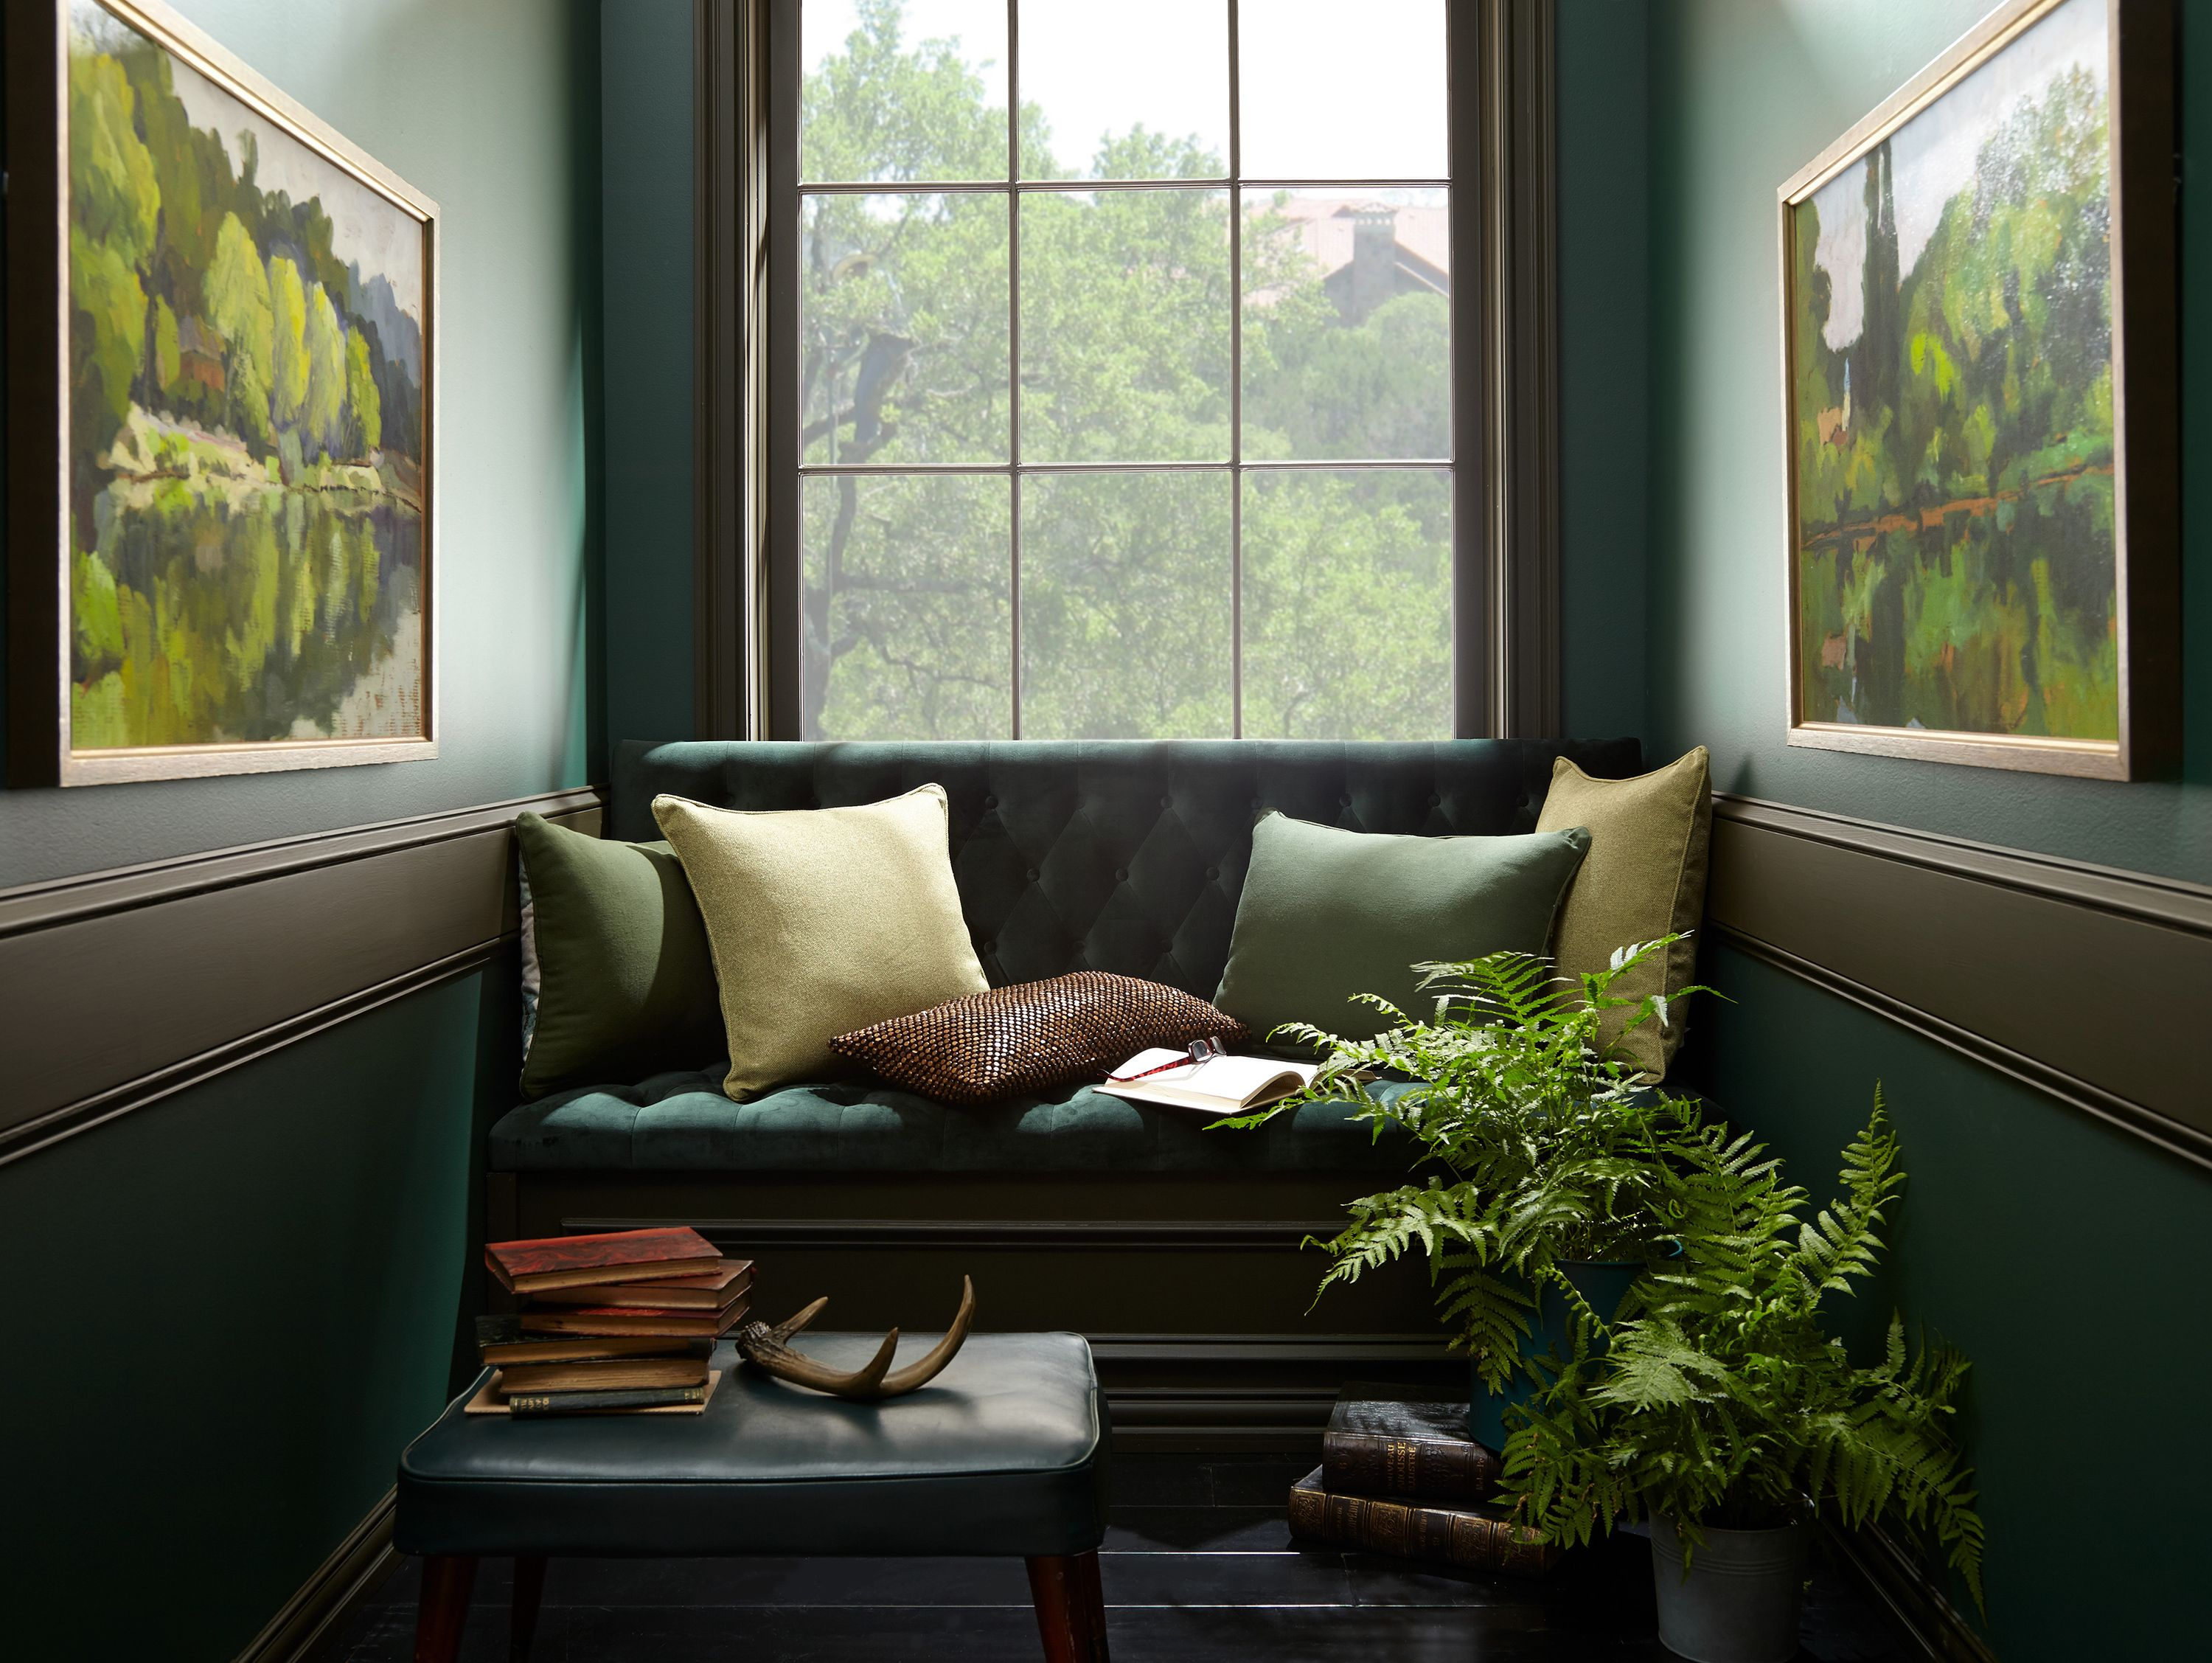 Cosagach Reading Nook Green Rooms Cozy House Home Trends